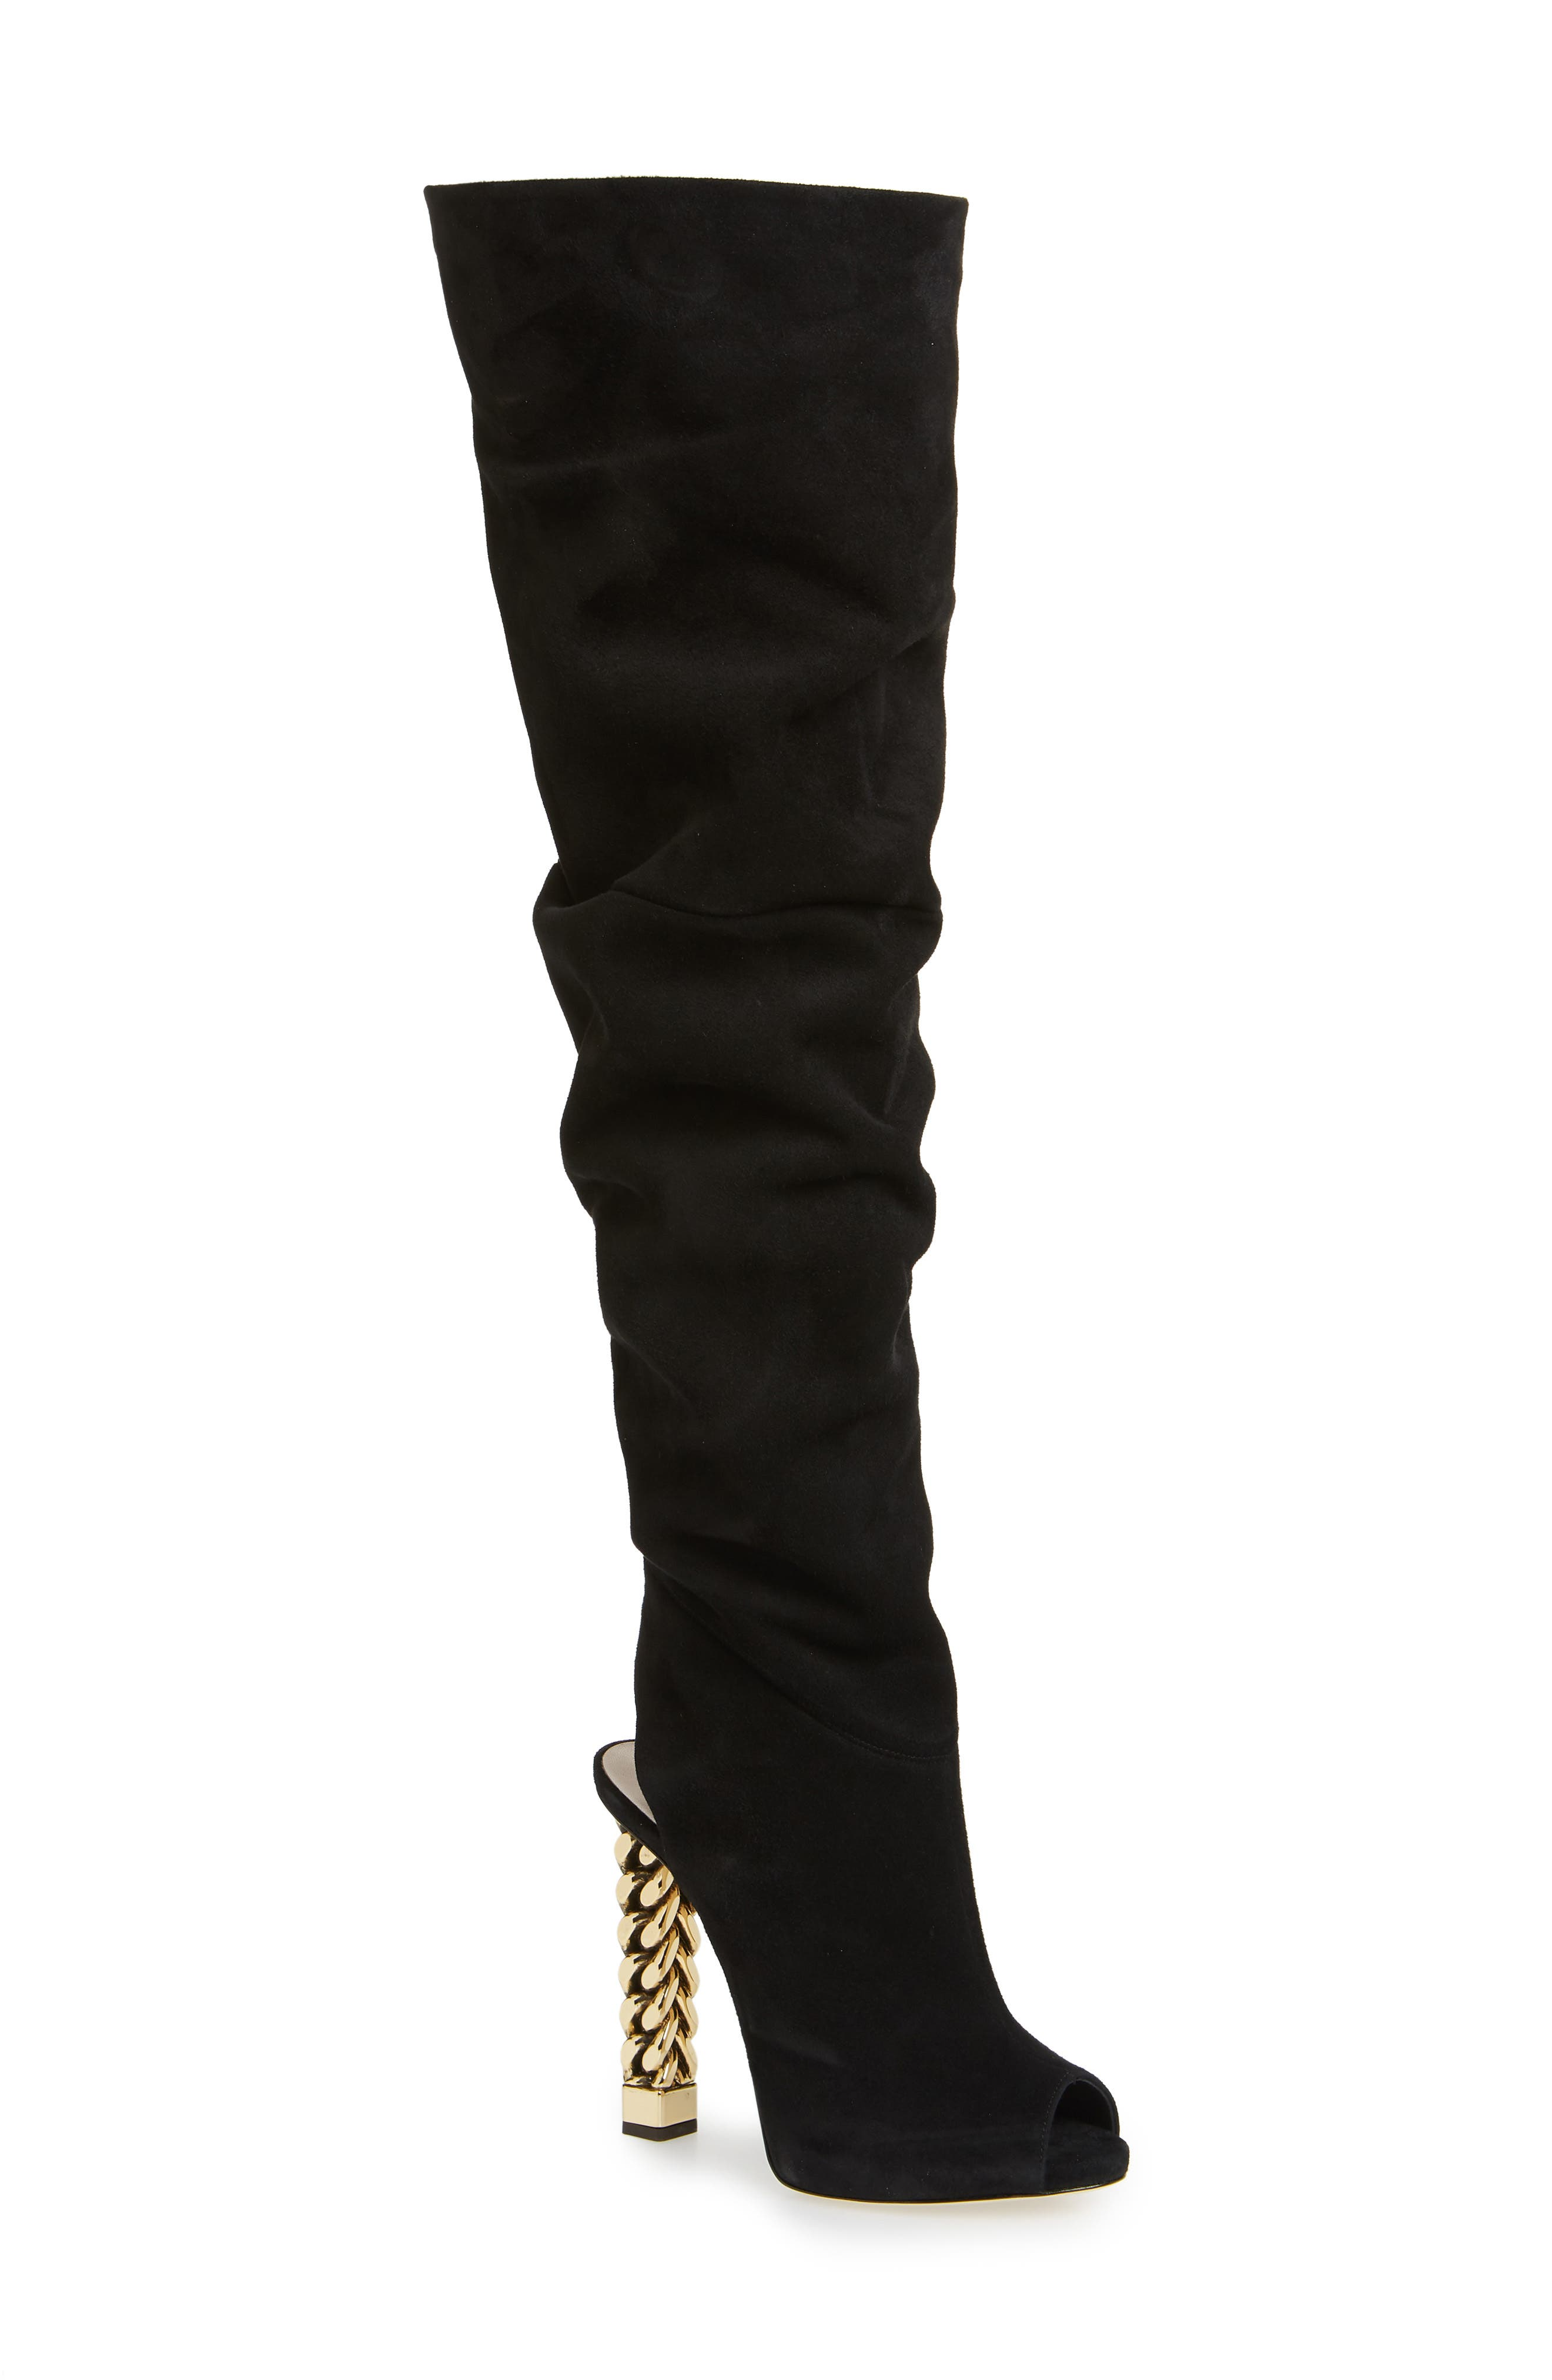 x Rita Ora Chain Heel Over the Knee Boot,                             Main thumbnail 1, color,                             BLACK